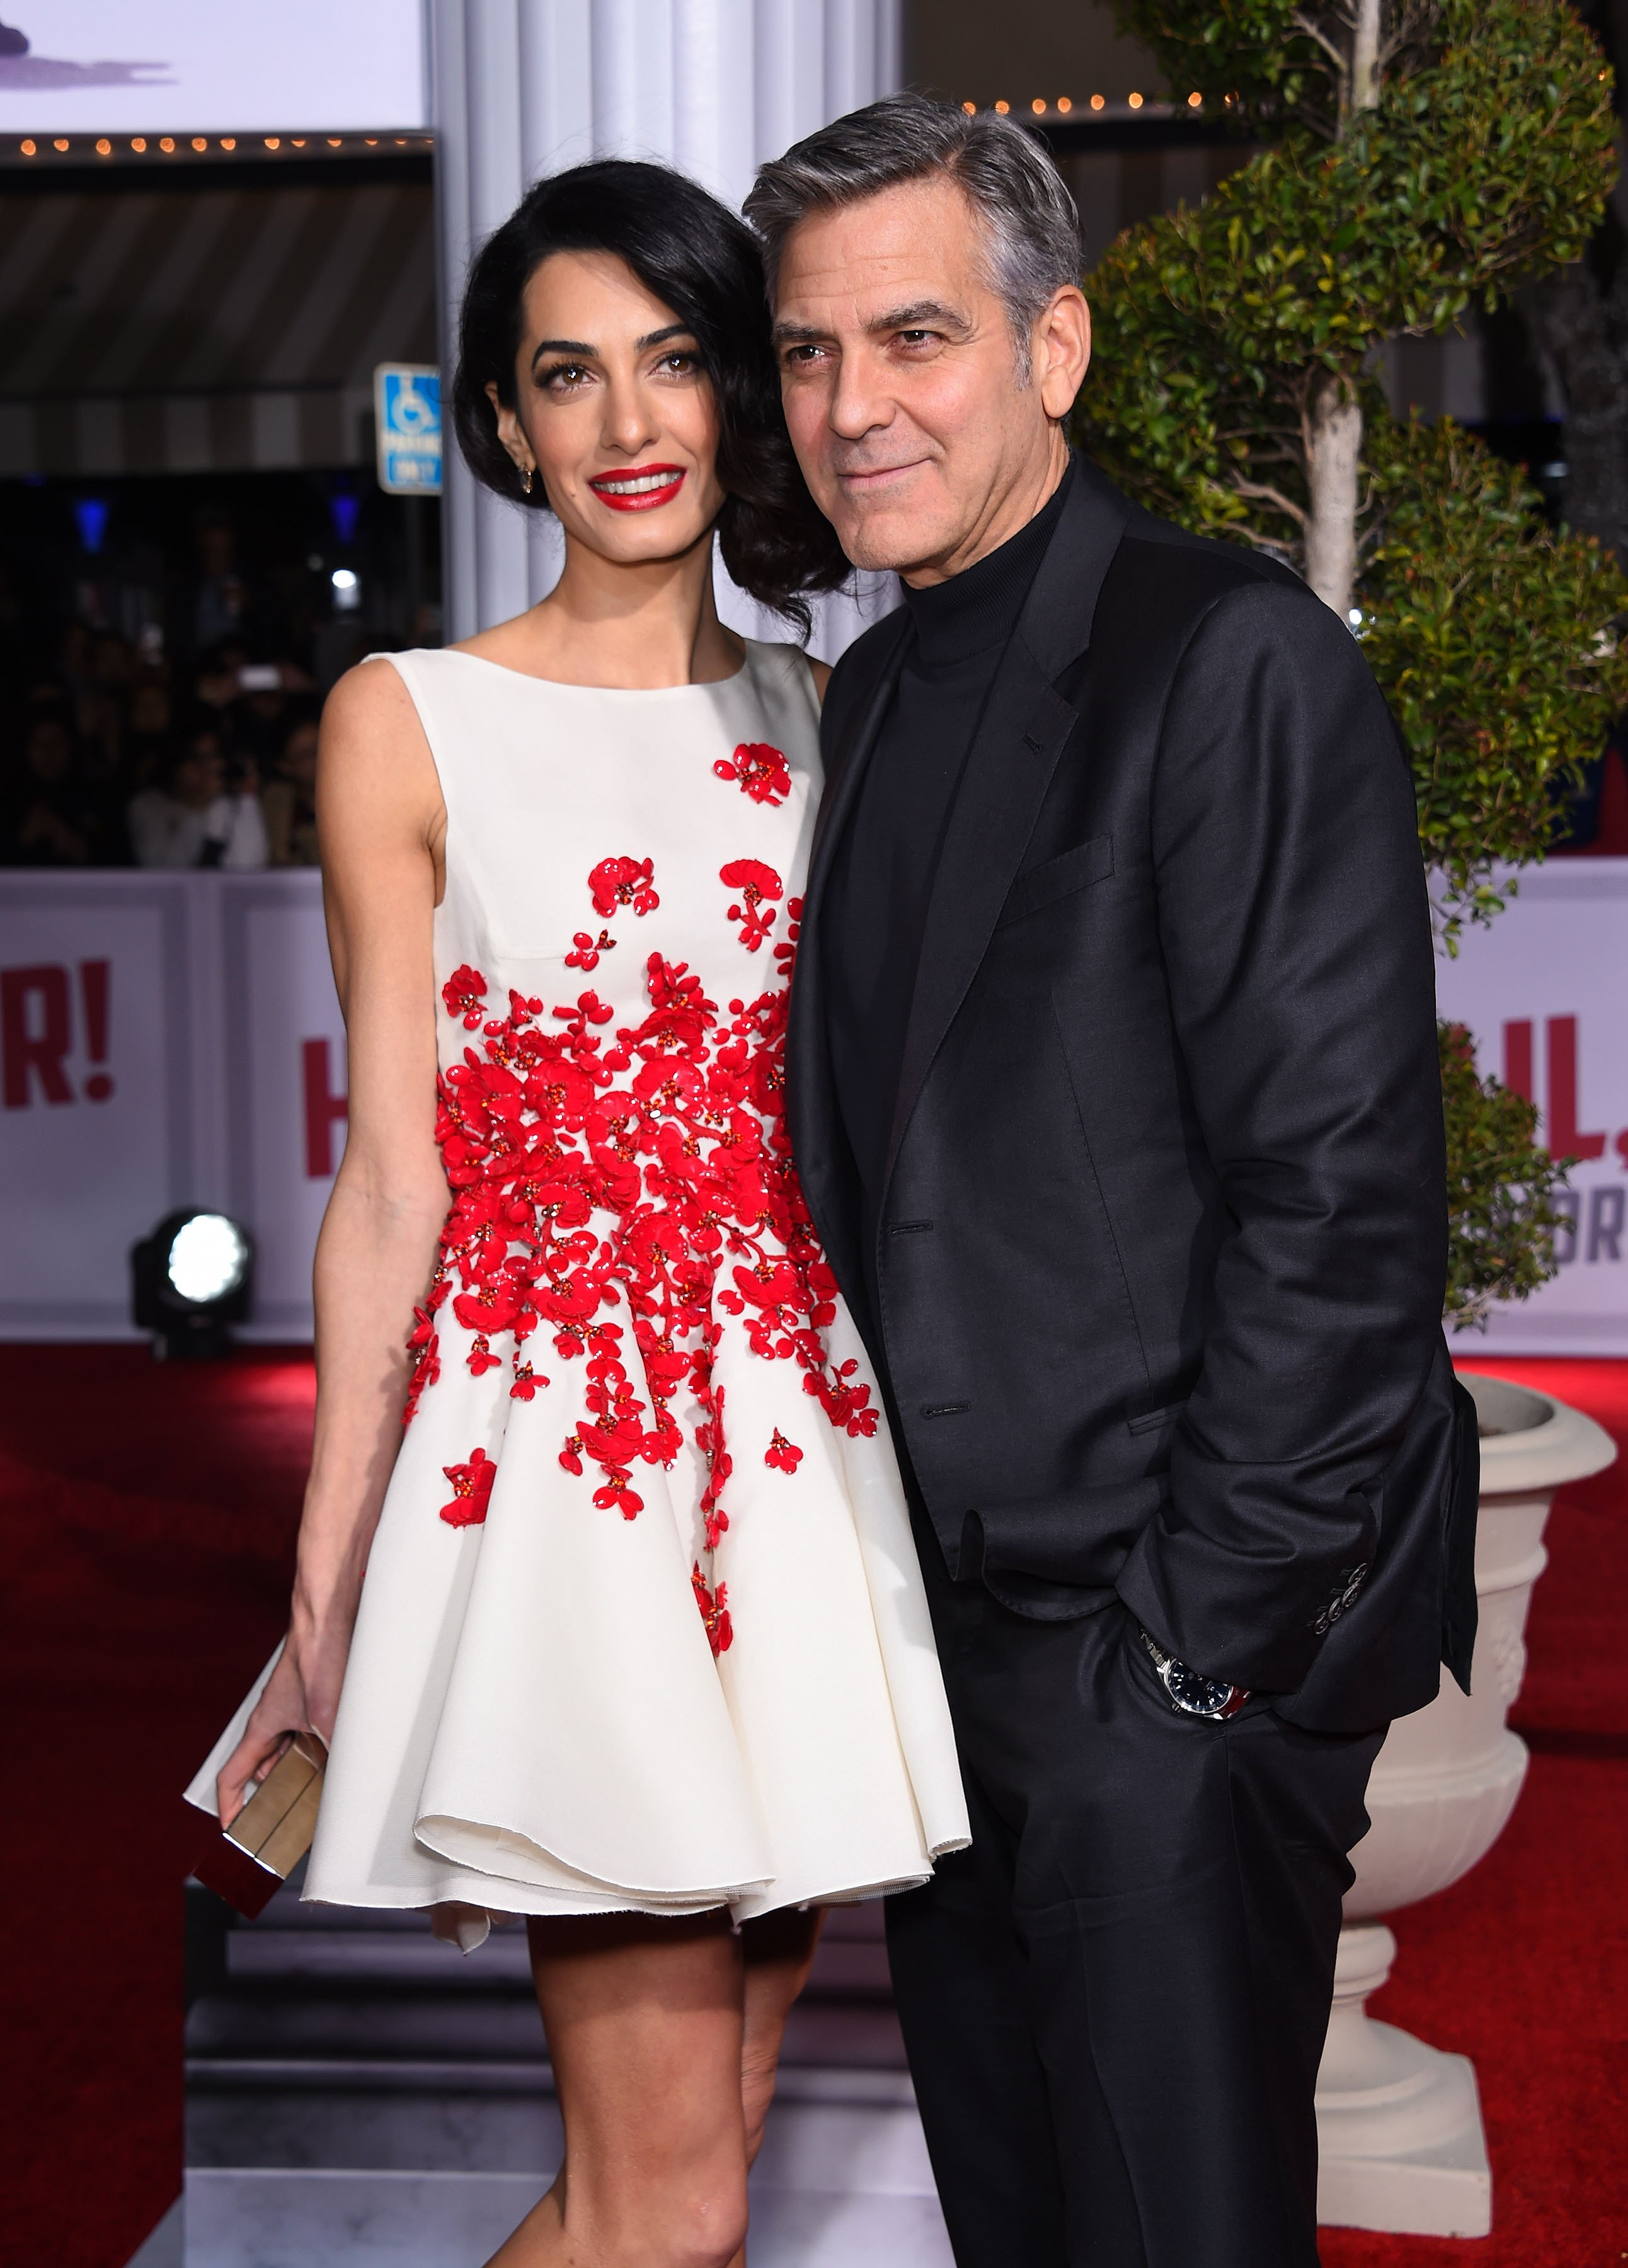 """George Clooney & Amal Alamuddin arrives to the """"Hail, Caesar"""" World Premiere on February 01, 2016 in Westwood, CA. 